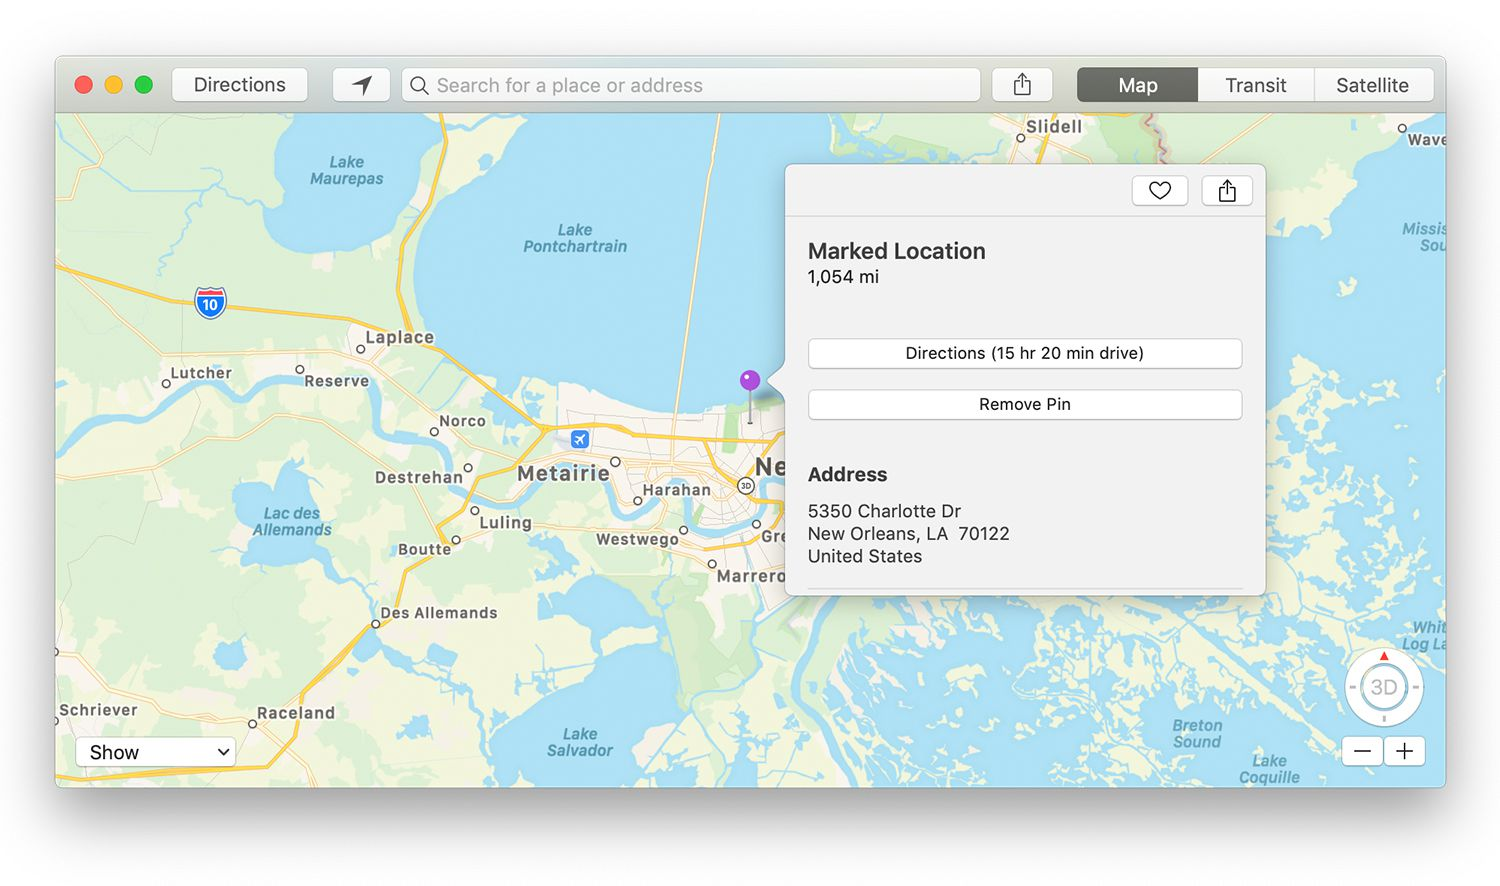 Marked Location information screen in Mac Maps app